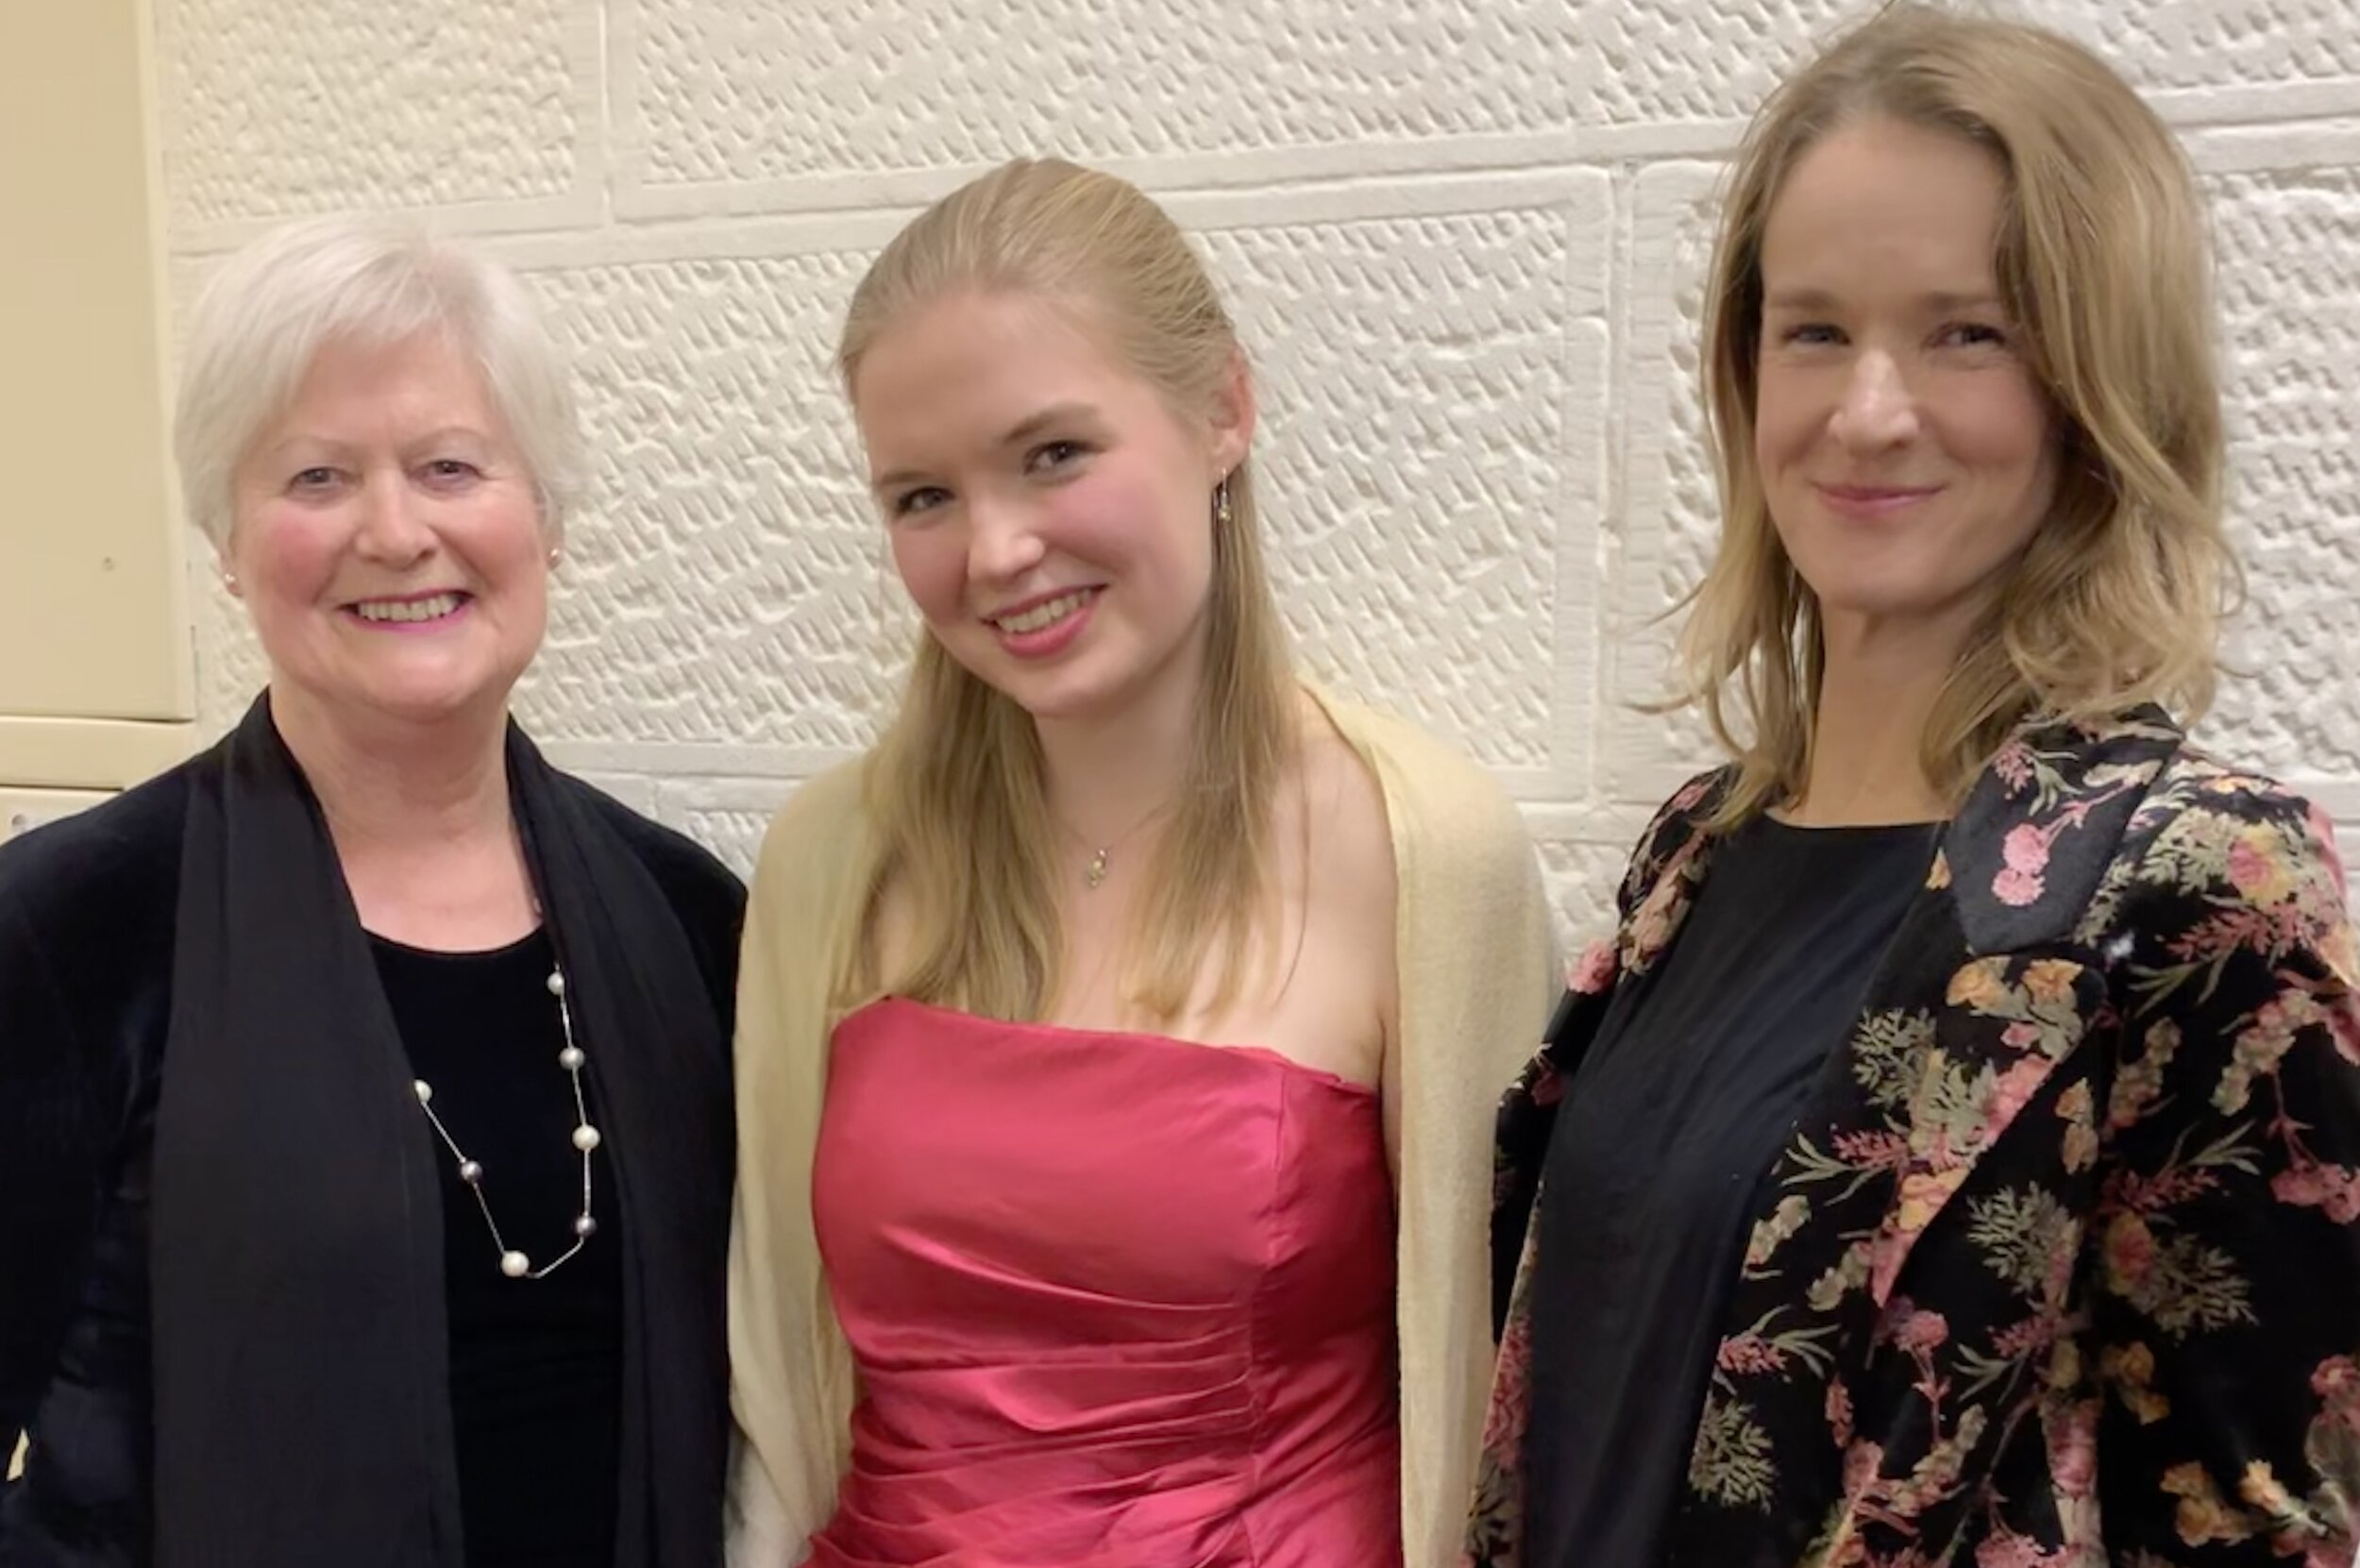 Ros Tilsley (Daughter of Nelle Ashdown), Lana Kains (Winner of the Nelle ASshdown Memorial Award 2019) and Wendy Page (Adjudicator of the Award)